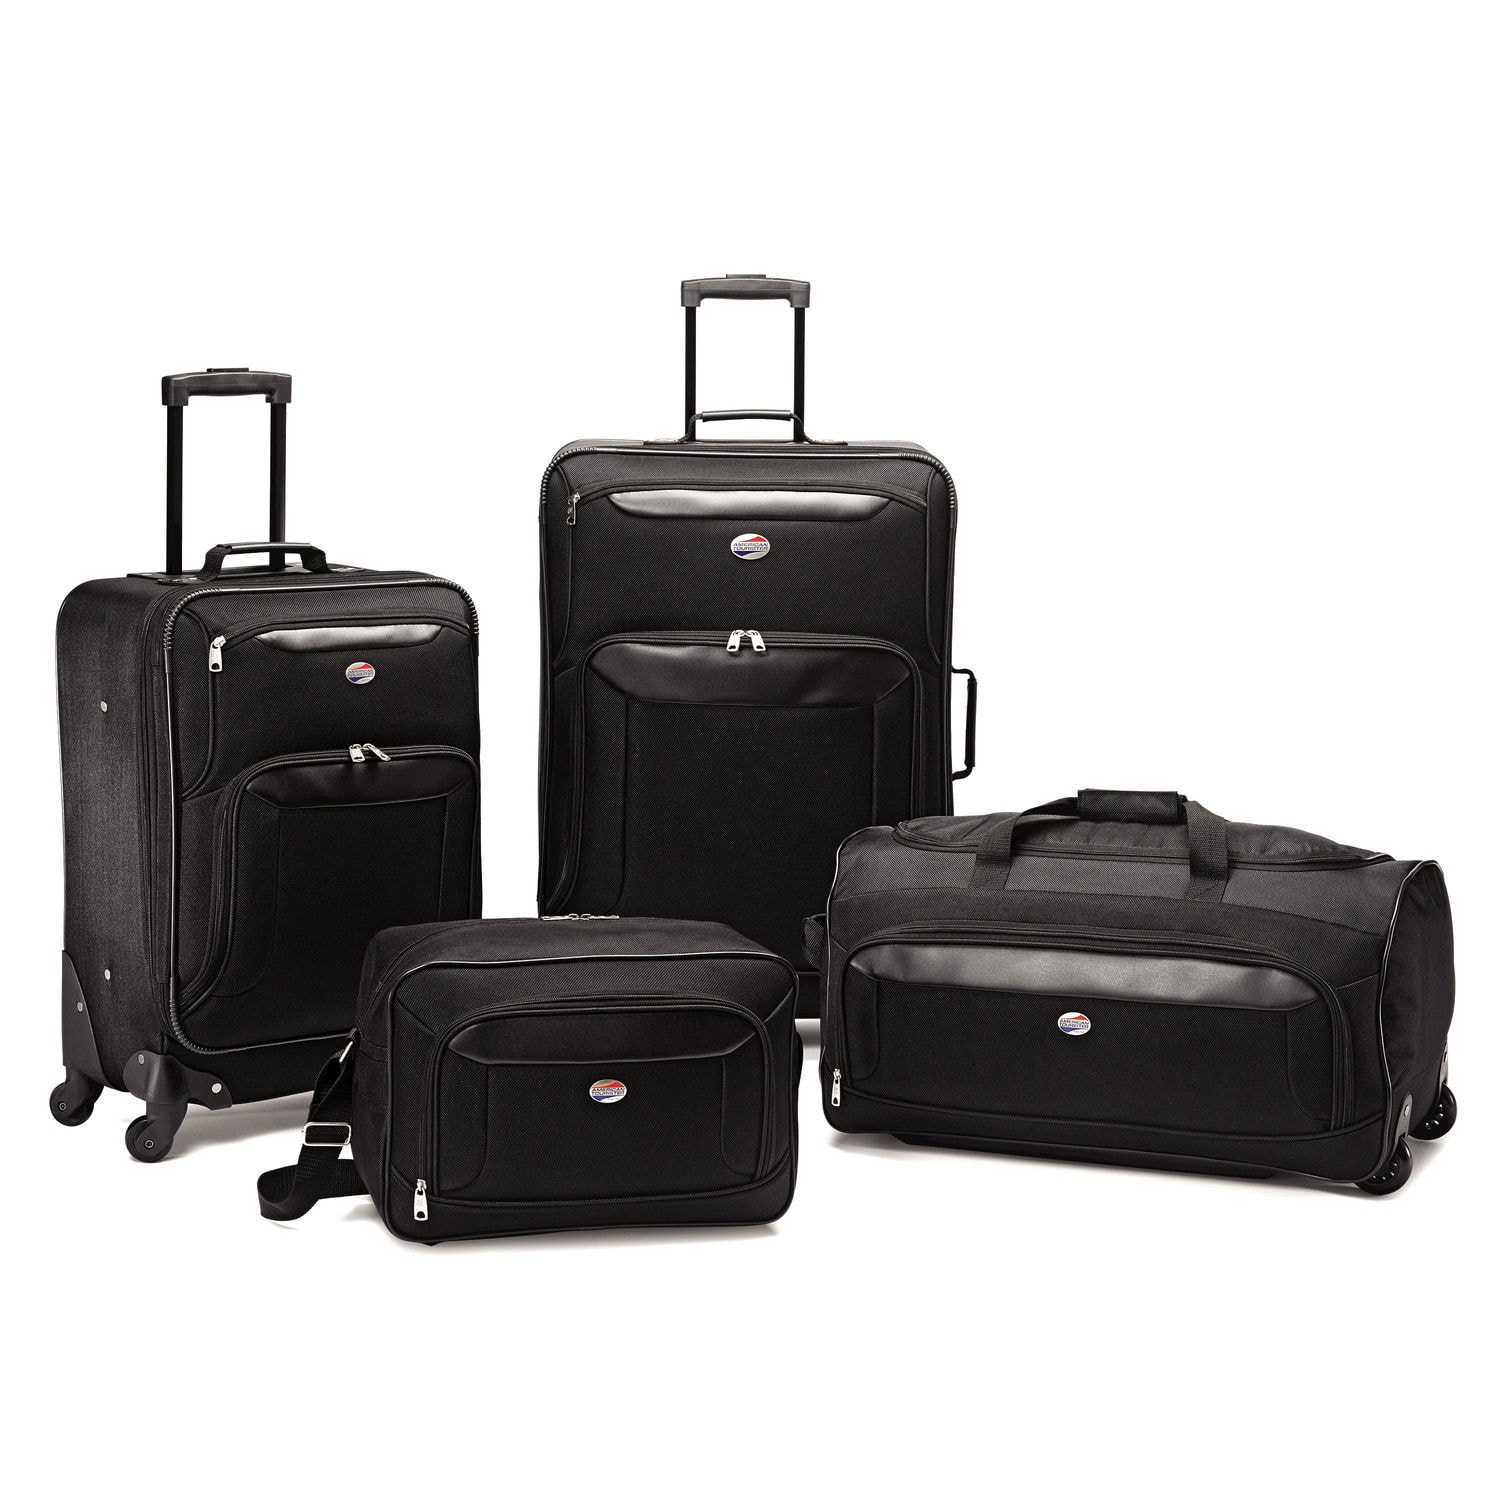 4-Piece American Tourister Brookfield Luggage Set (Navy Blue or Black) $75 + Free Shipping